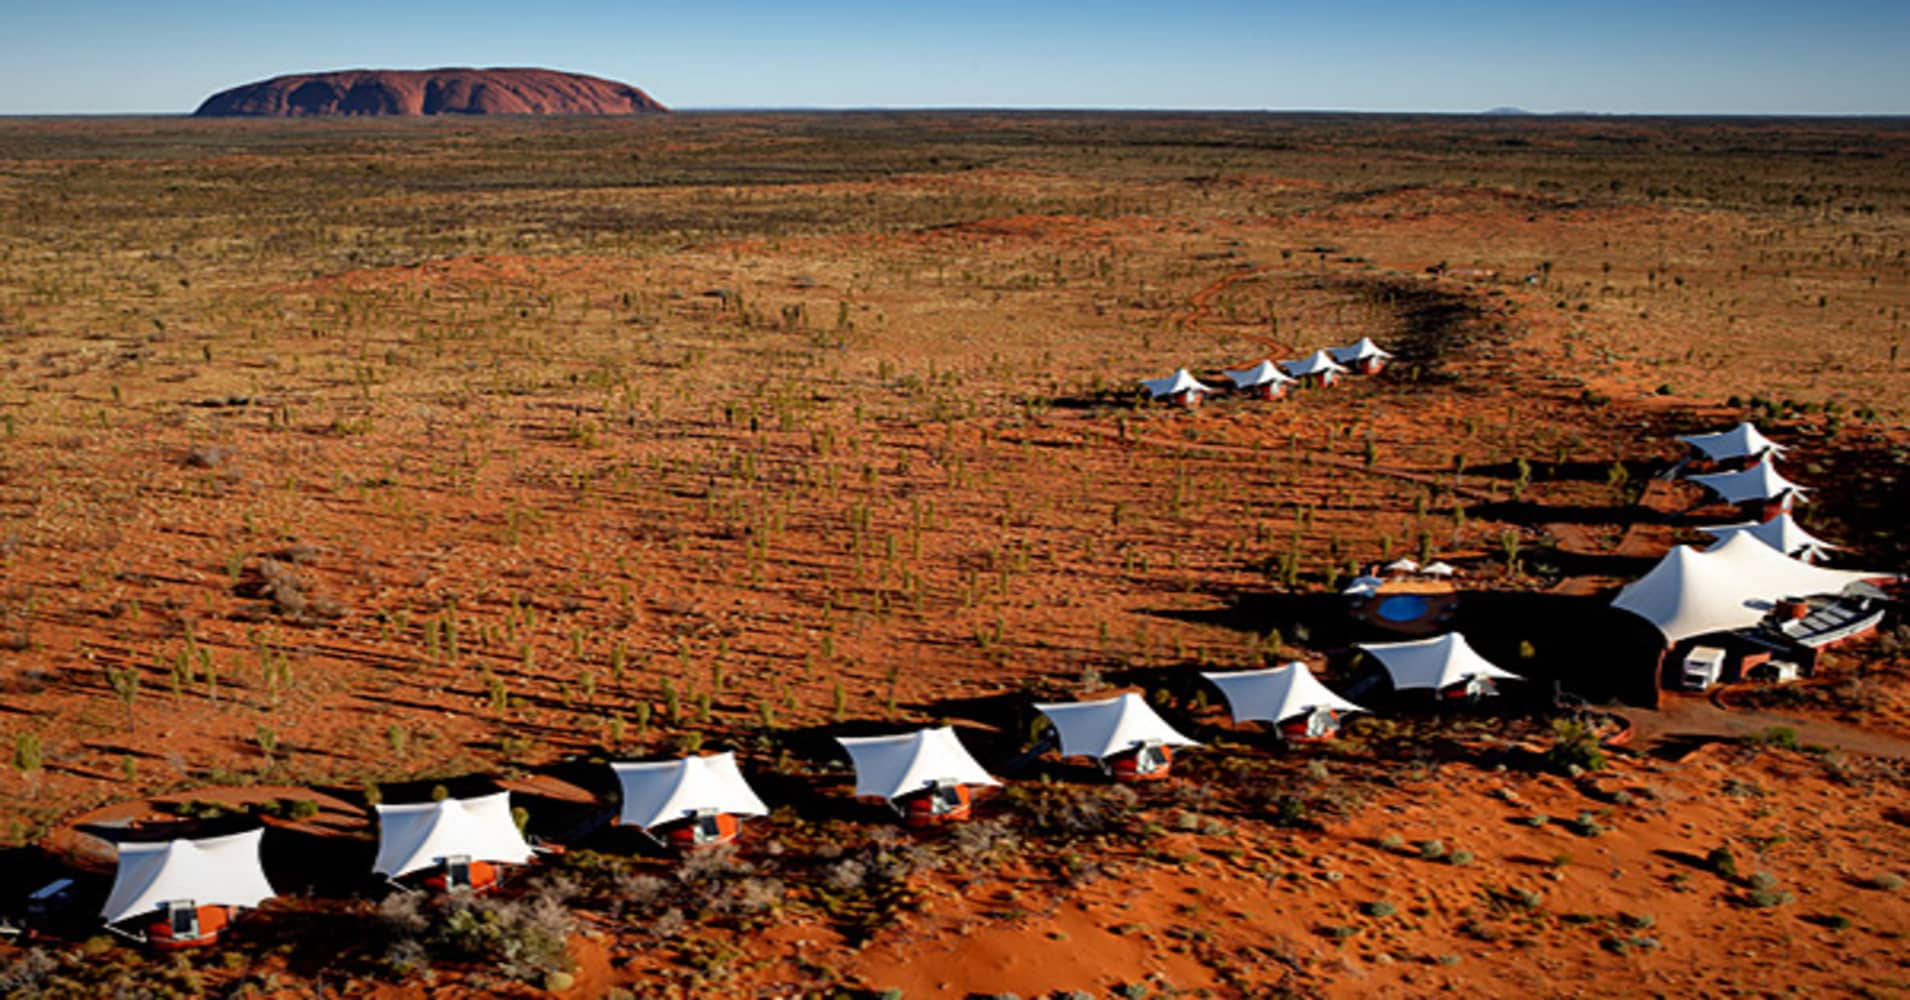 Double occupancy starts at $2,070 per room per night. If you stay three nights or more, the price drops to $1,758. A string of 15 tents dotting a sand dune in the Outback may not sound luxurious, but the tents of cover 430-square-feet and have air-conditioning, retracting blinds, and Bose sound systems.  Catch a direct flight to Ayers Rock Airport from Sydney to catch a 4WD vehicle for the last six miles through the Outback to the resort. Watching the sunrise over Uluru (a natural sandstone roc